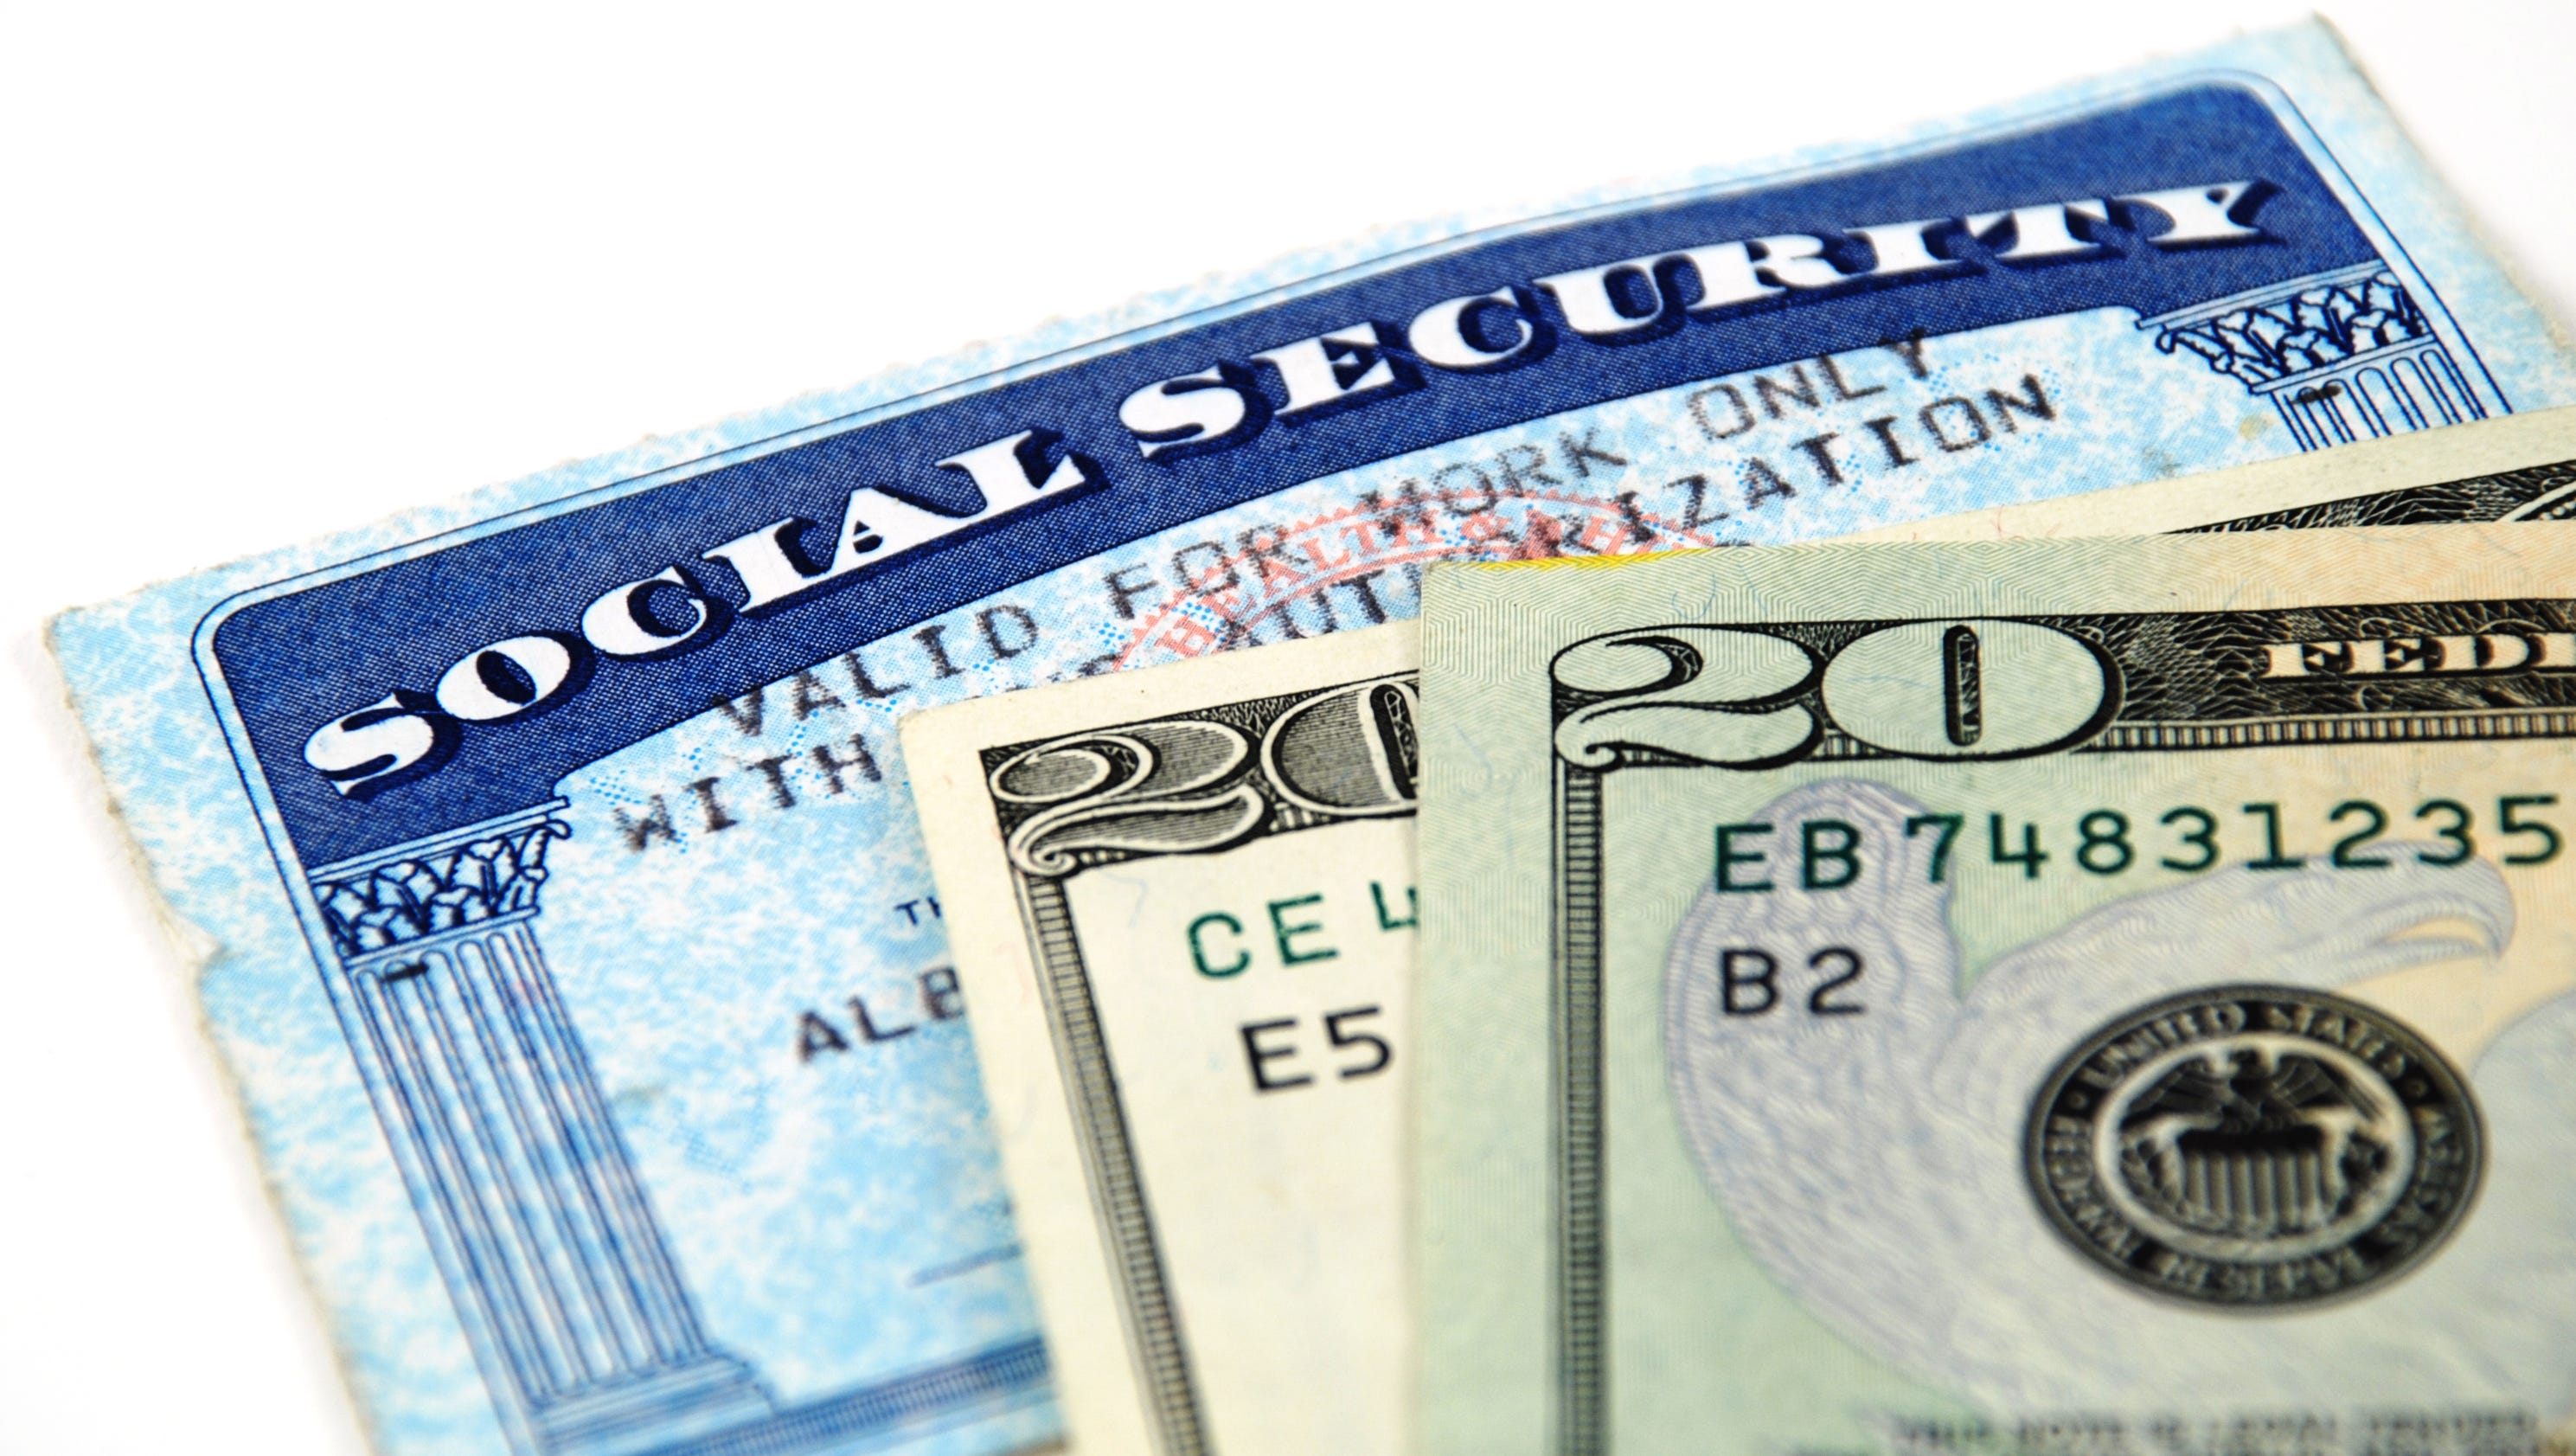 If you take a break, so does Social Security